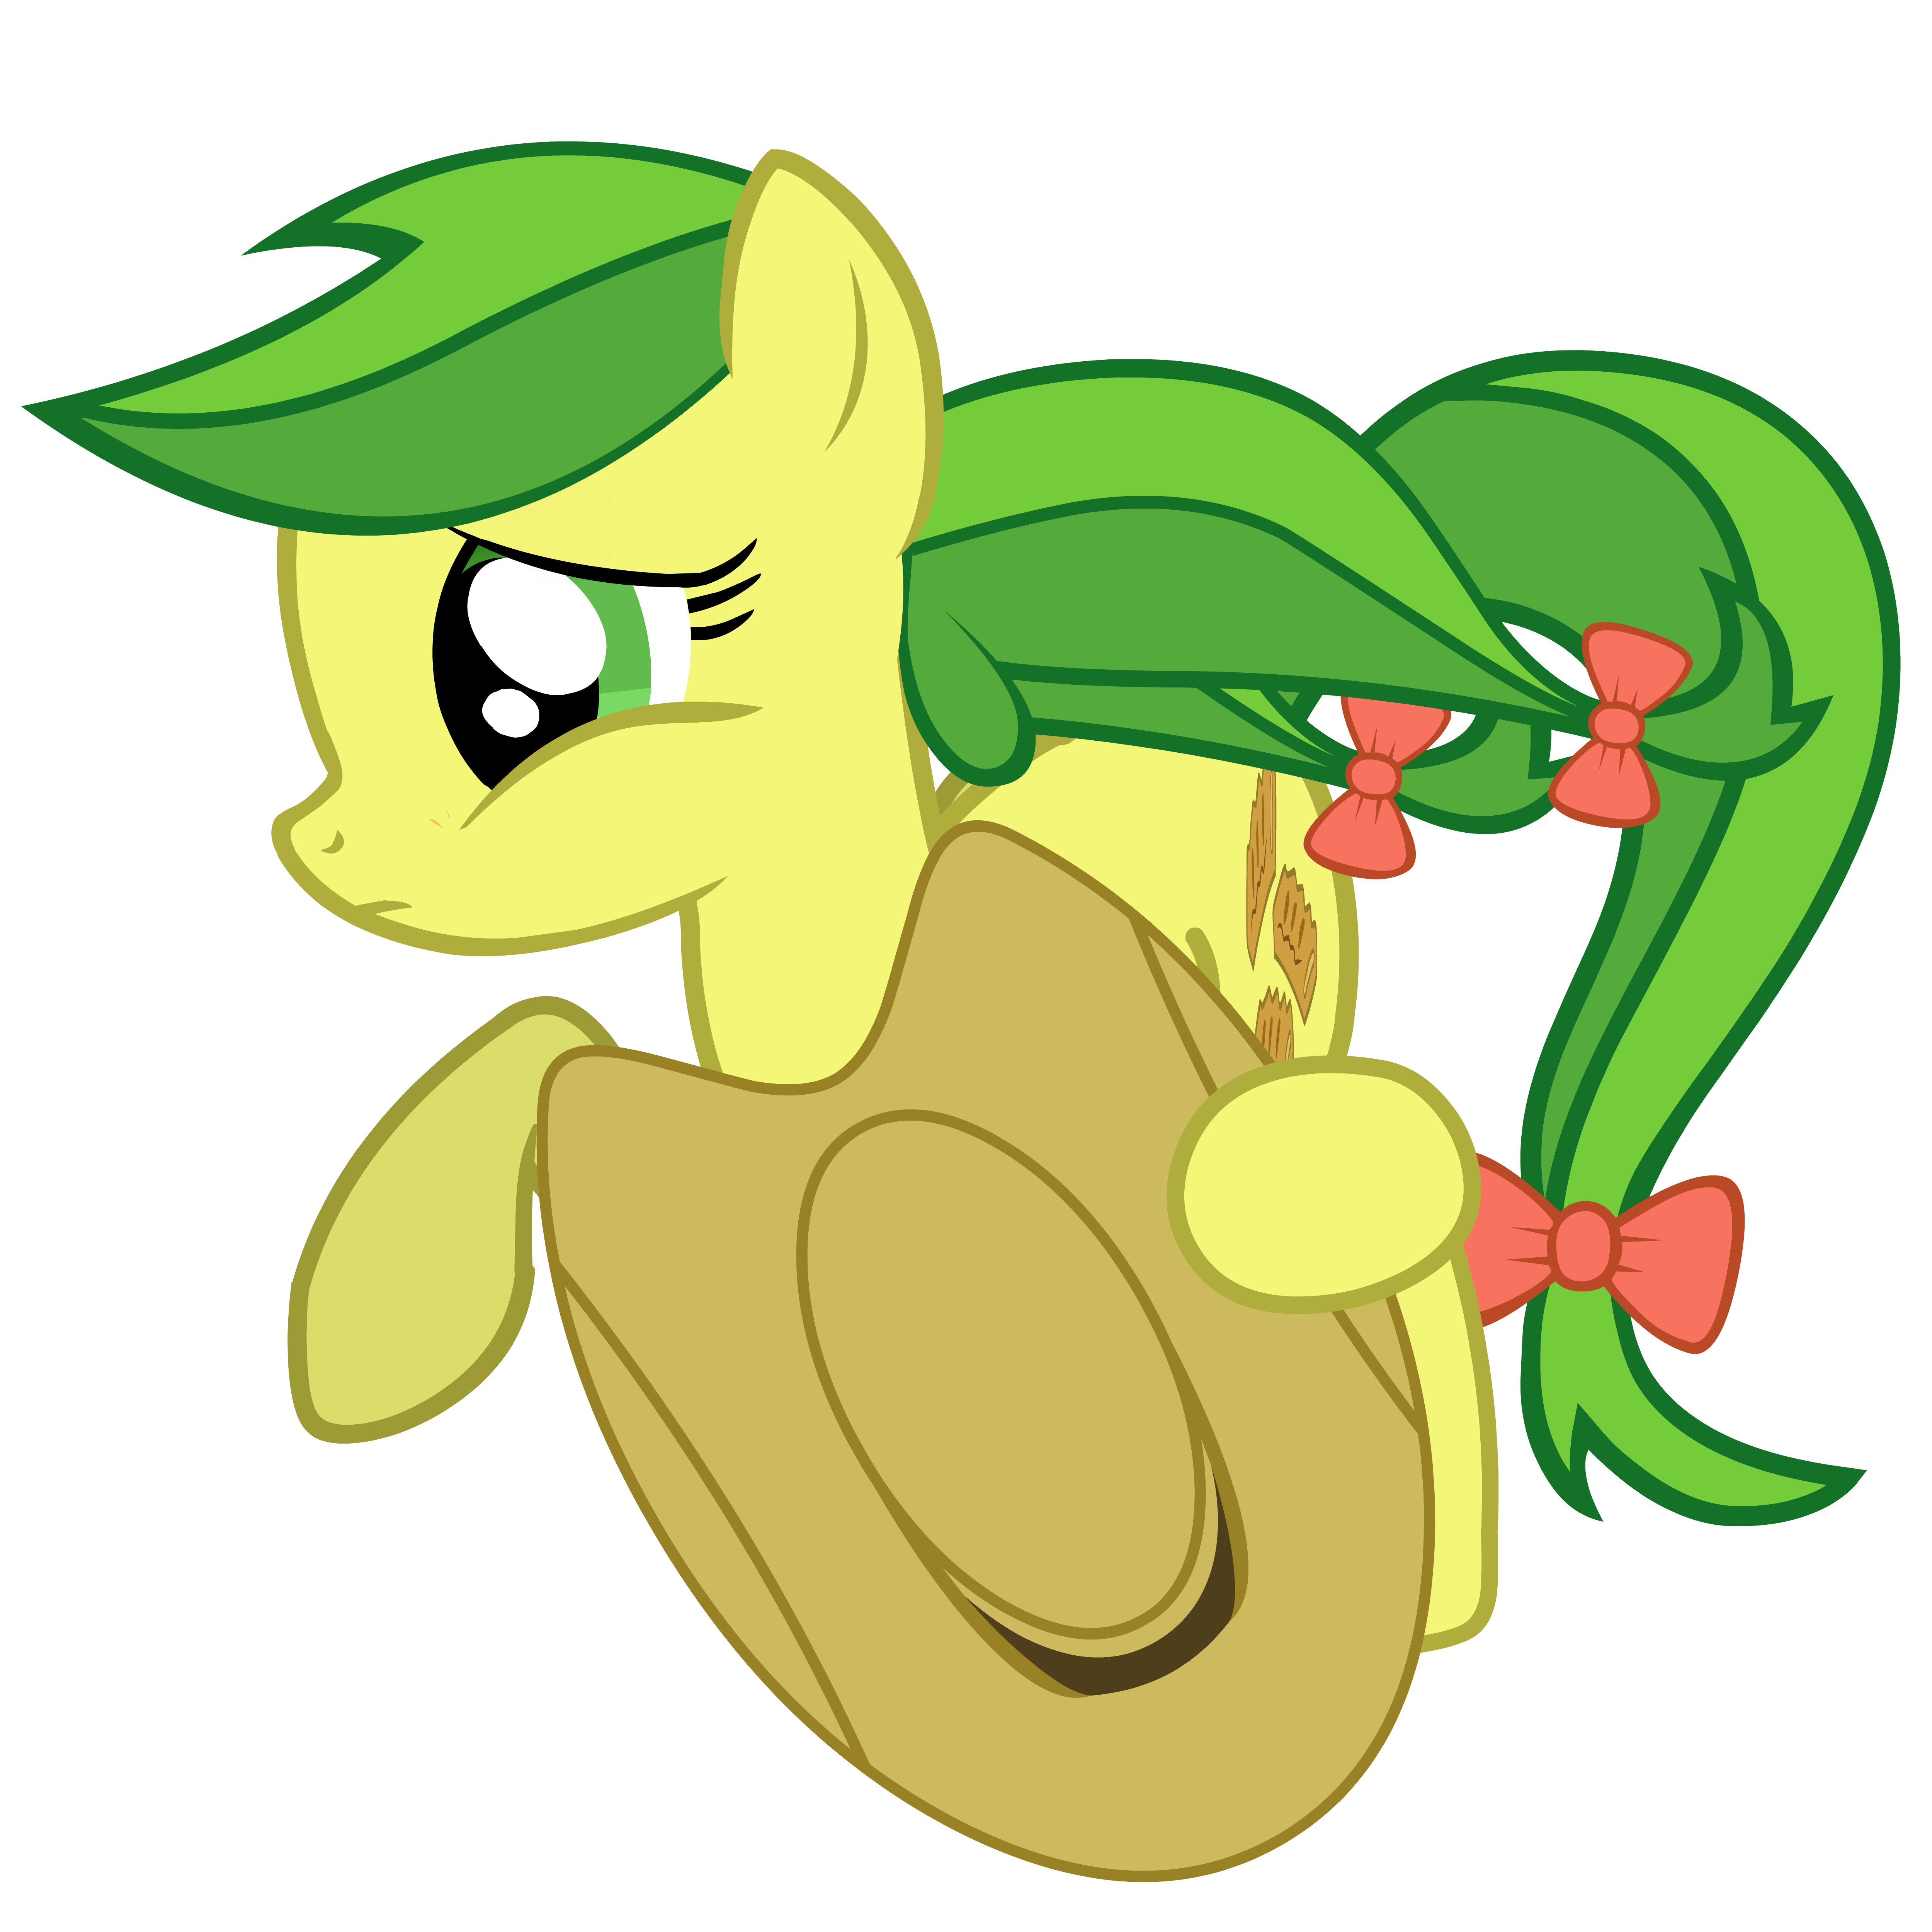 Apple Fritter is depressed by CheshireTwilight on DeviantArt.